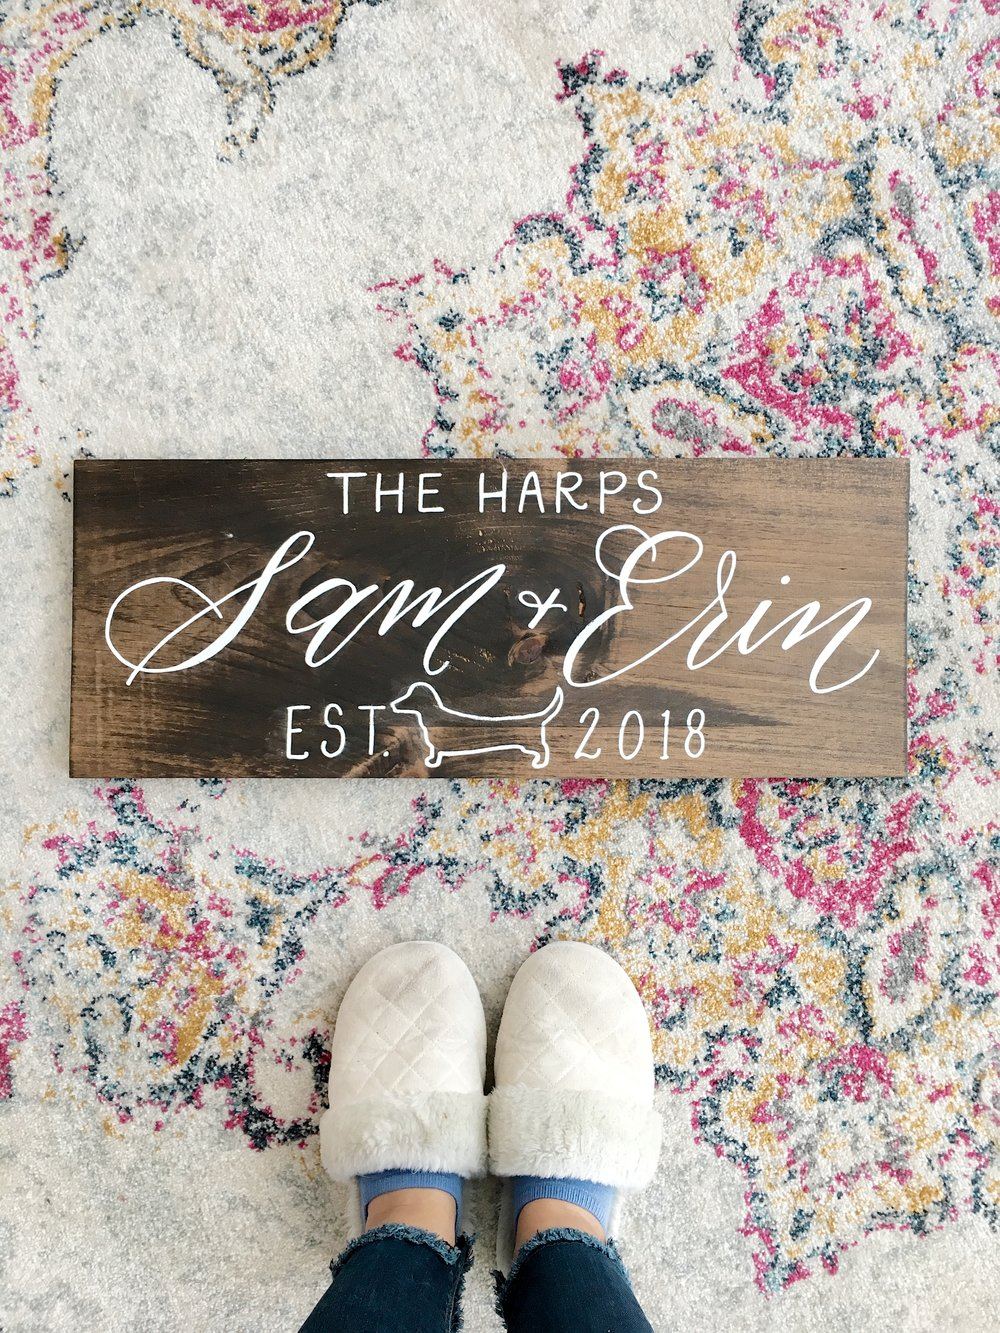 family name wood sign, wood sign shop, hand lettered wood sign, calligraphy wood sign, established wood sign, wood wedding sign